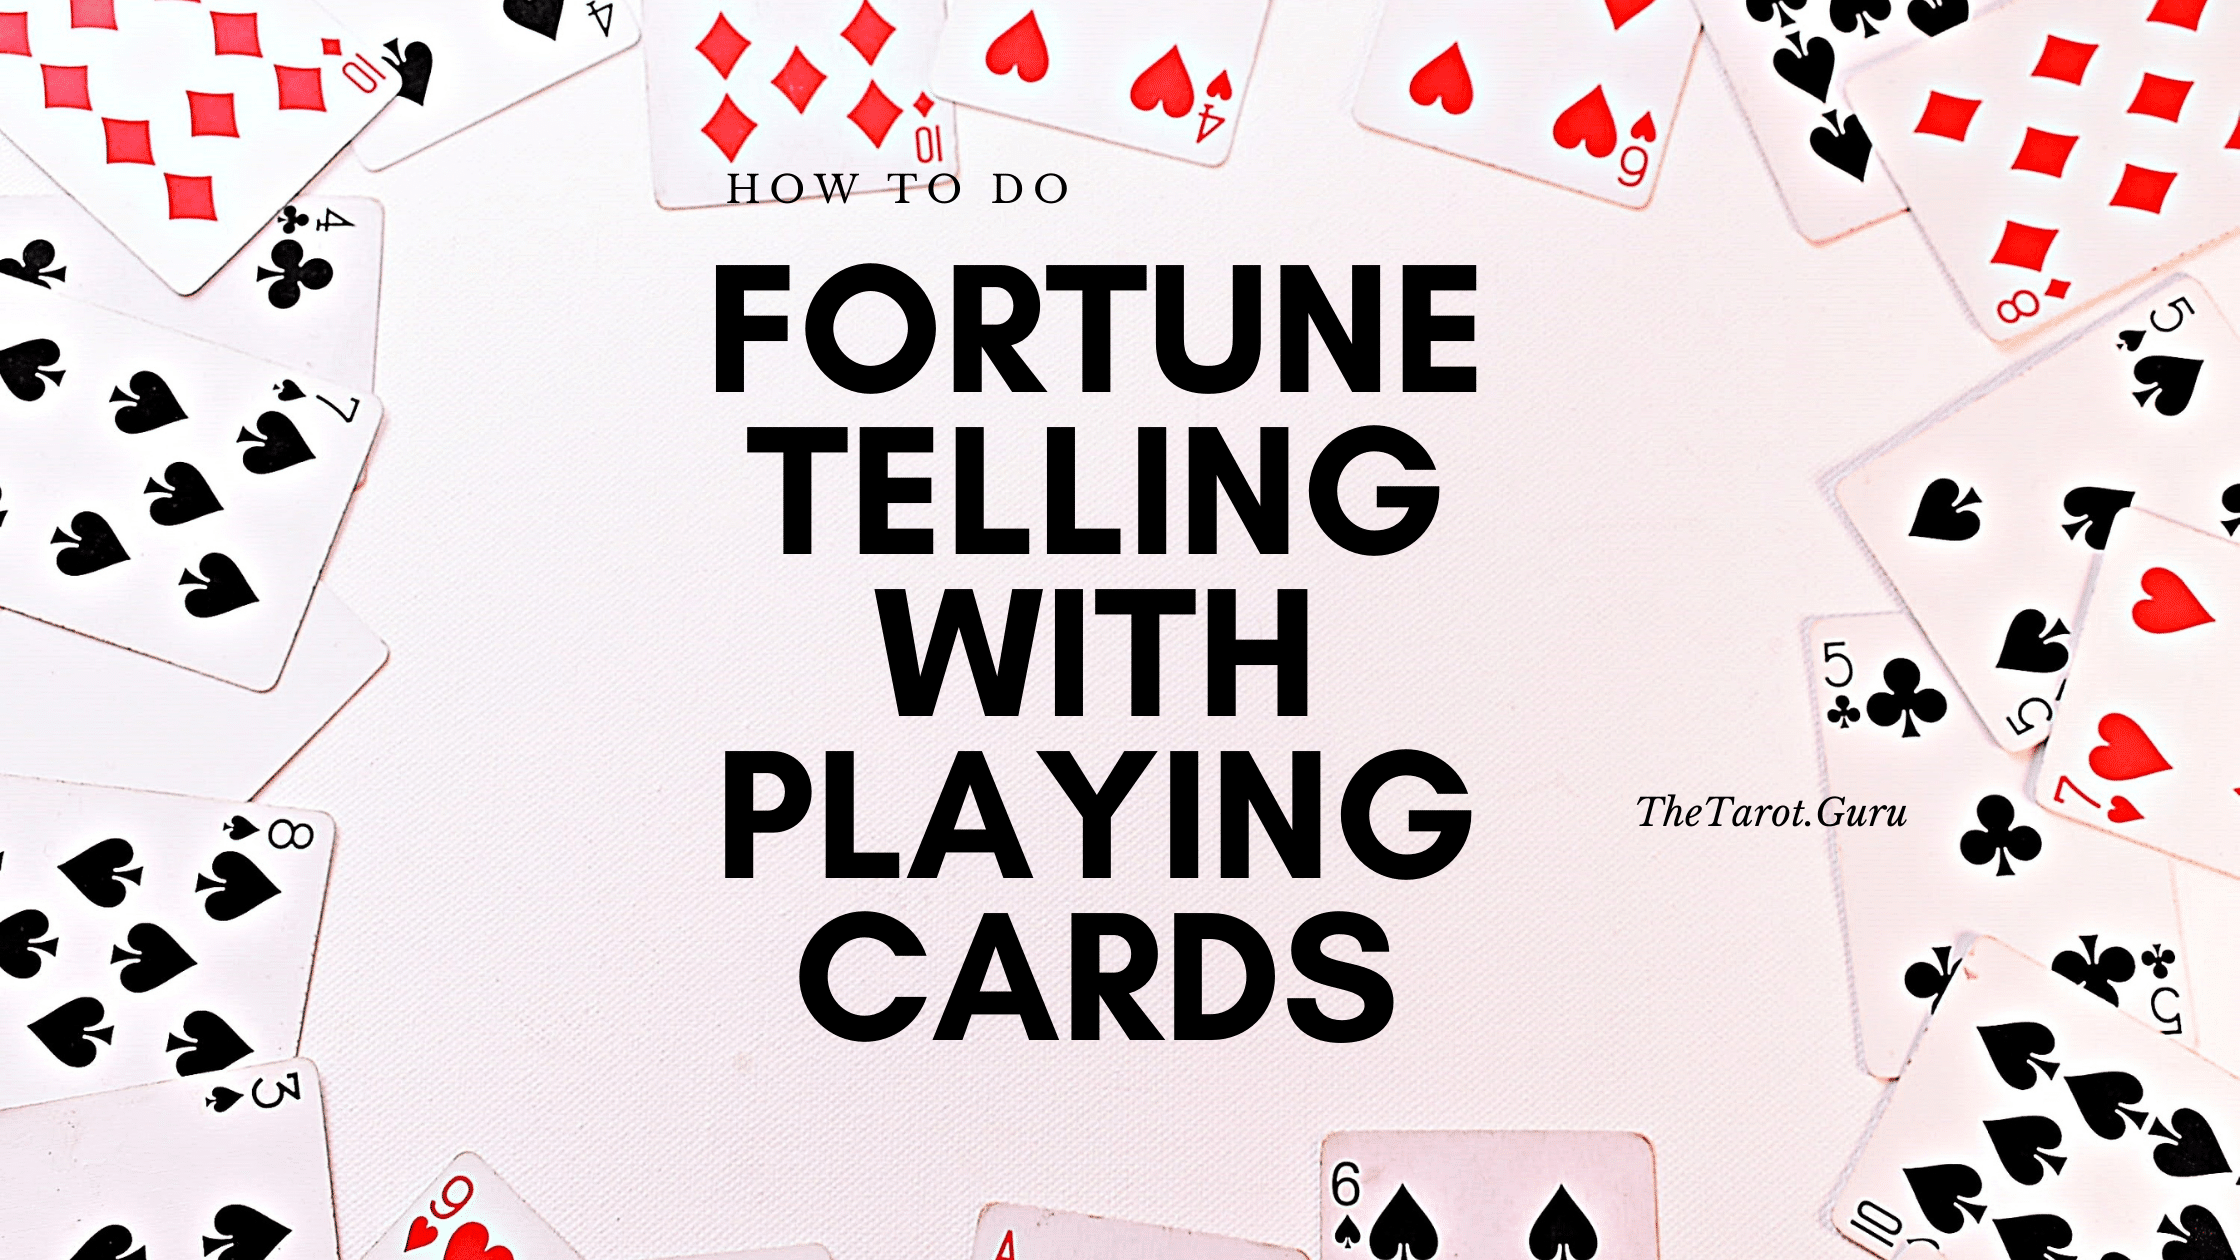 how to do fortune telling with playing cards